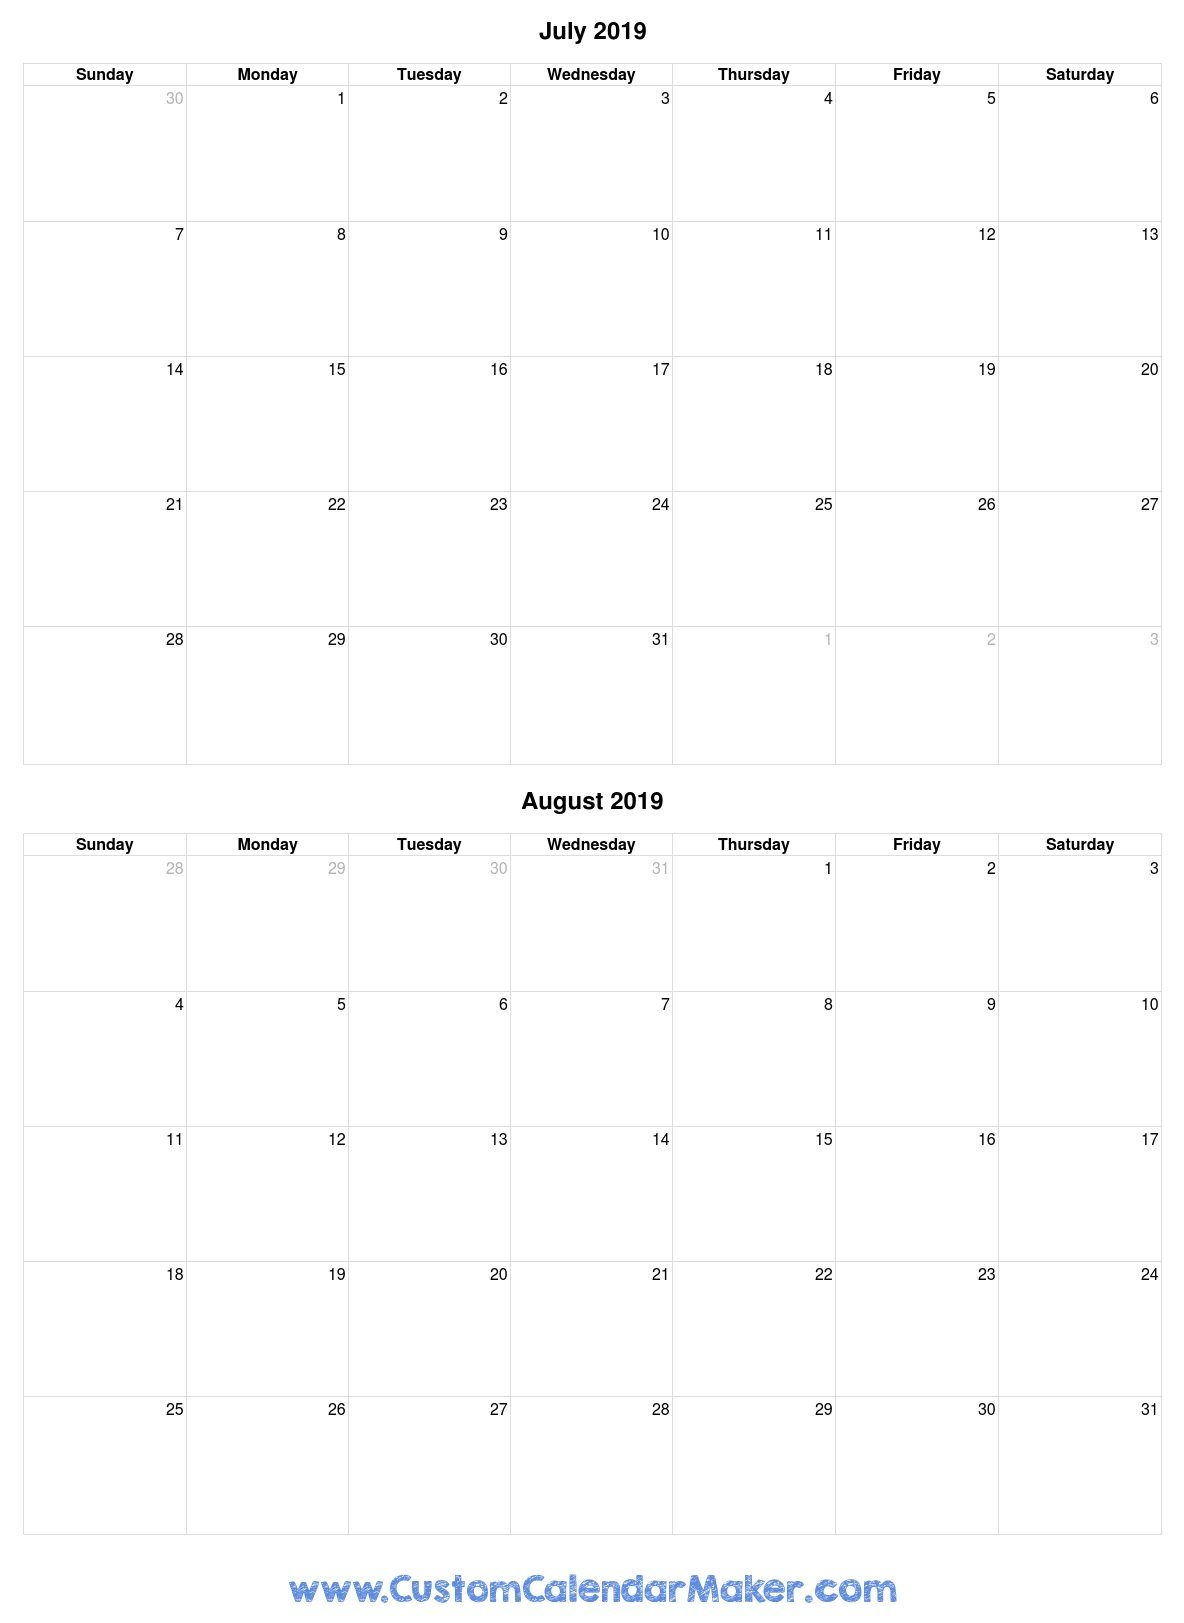 July And August 2019 Free Printable Calendar Template Calendar 2019 July August